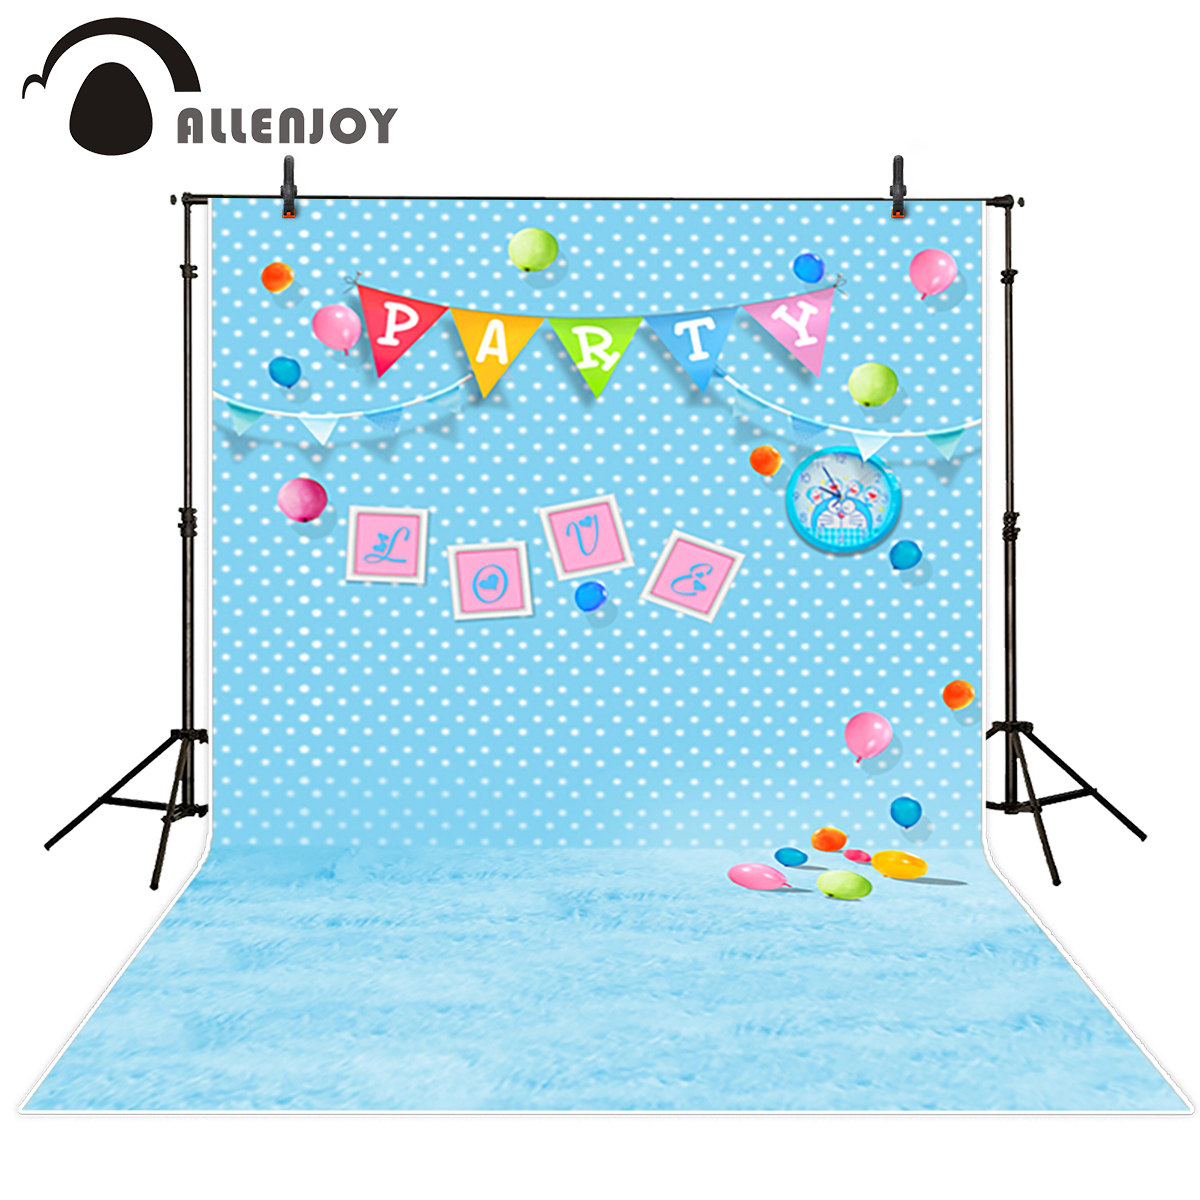 Allenjoy photography background birhday party flags kids balloons dots photobooth photo studio newborn original design allenjoy background for photo studio full moon spider black cat pumpkin halloween backdrop newborn original design fantasy props